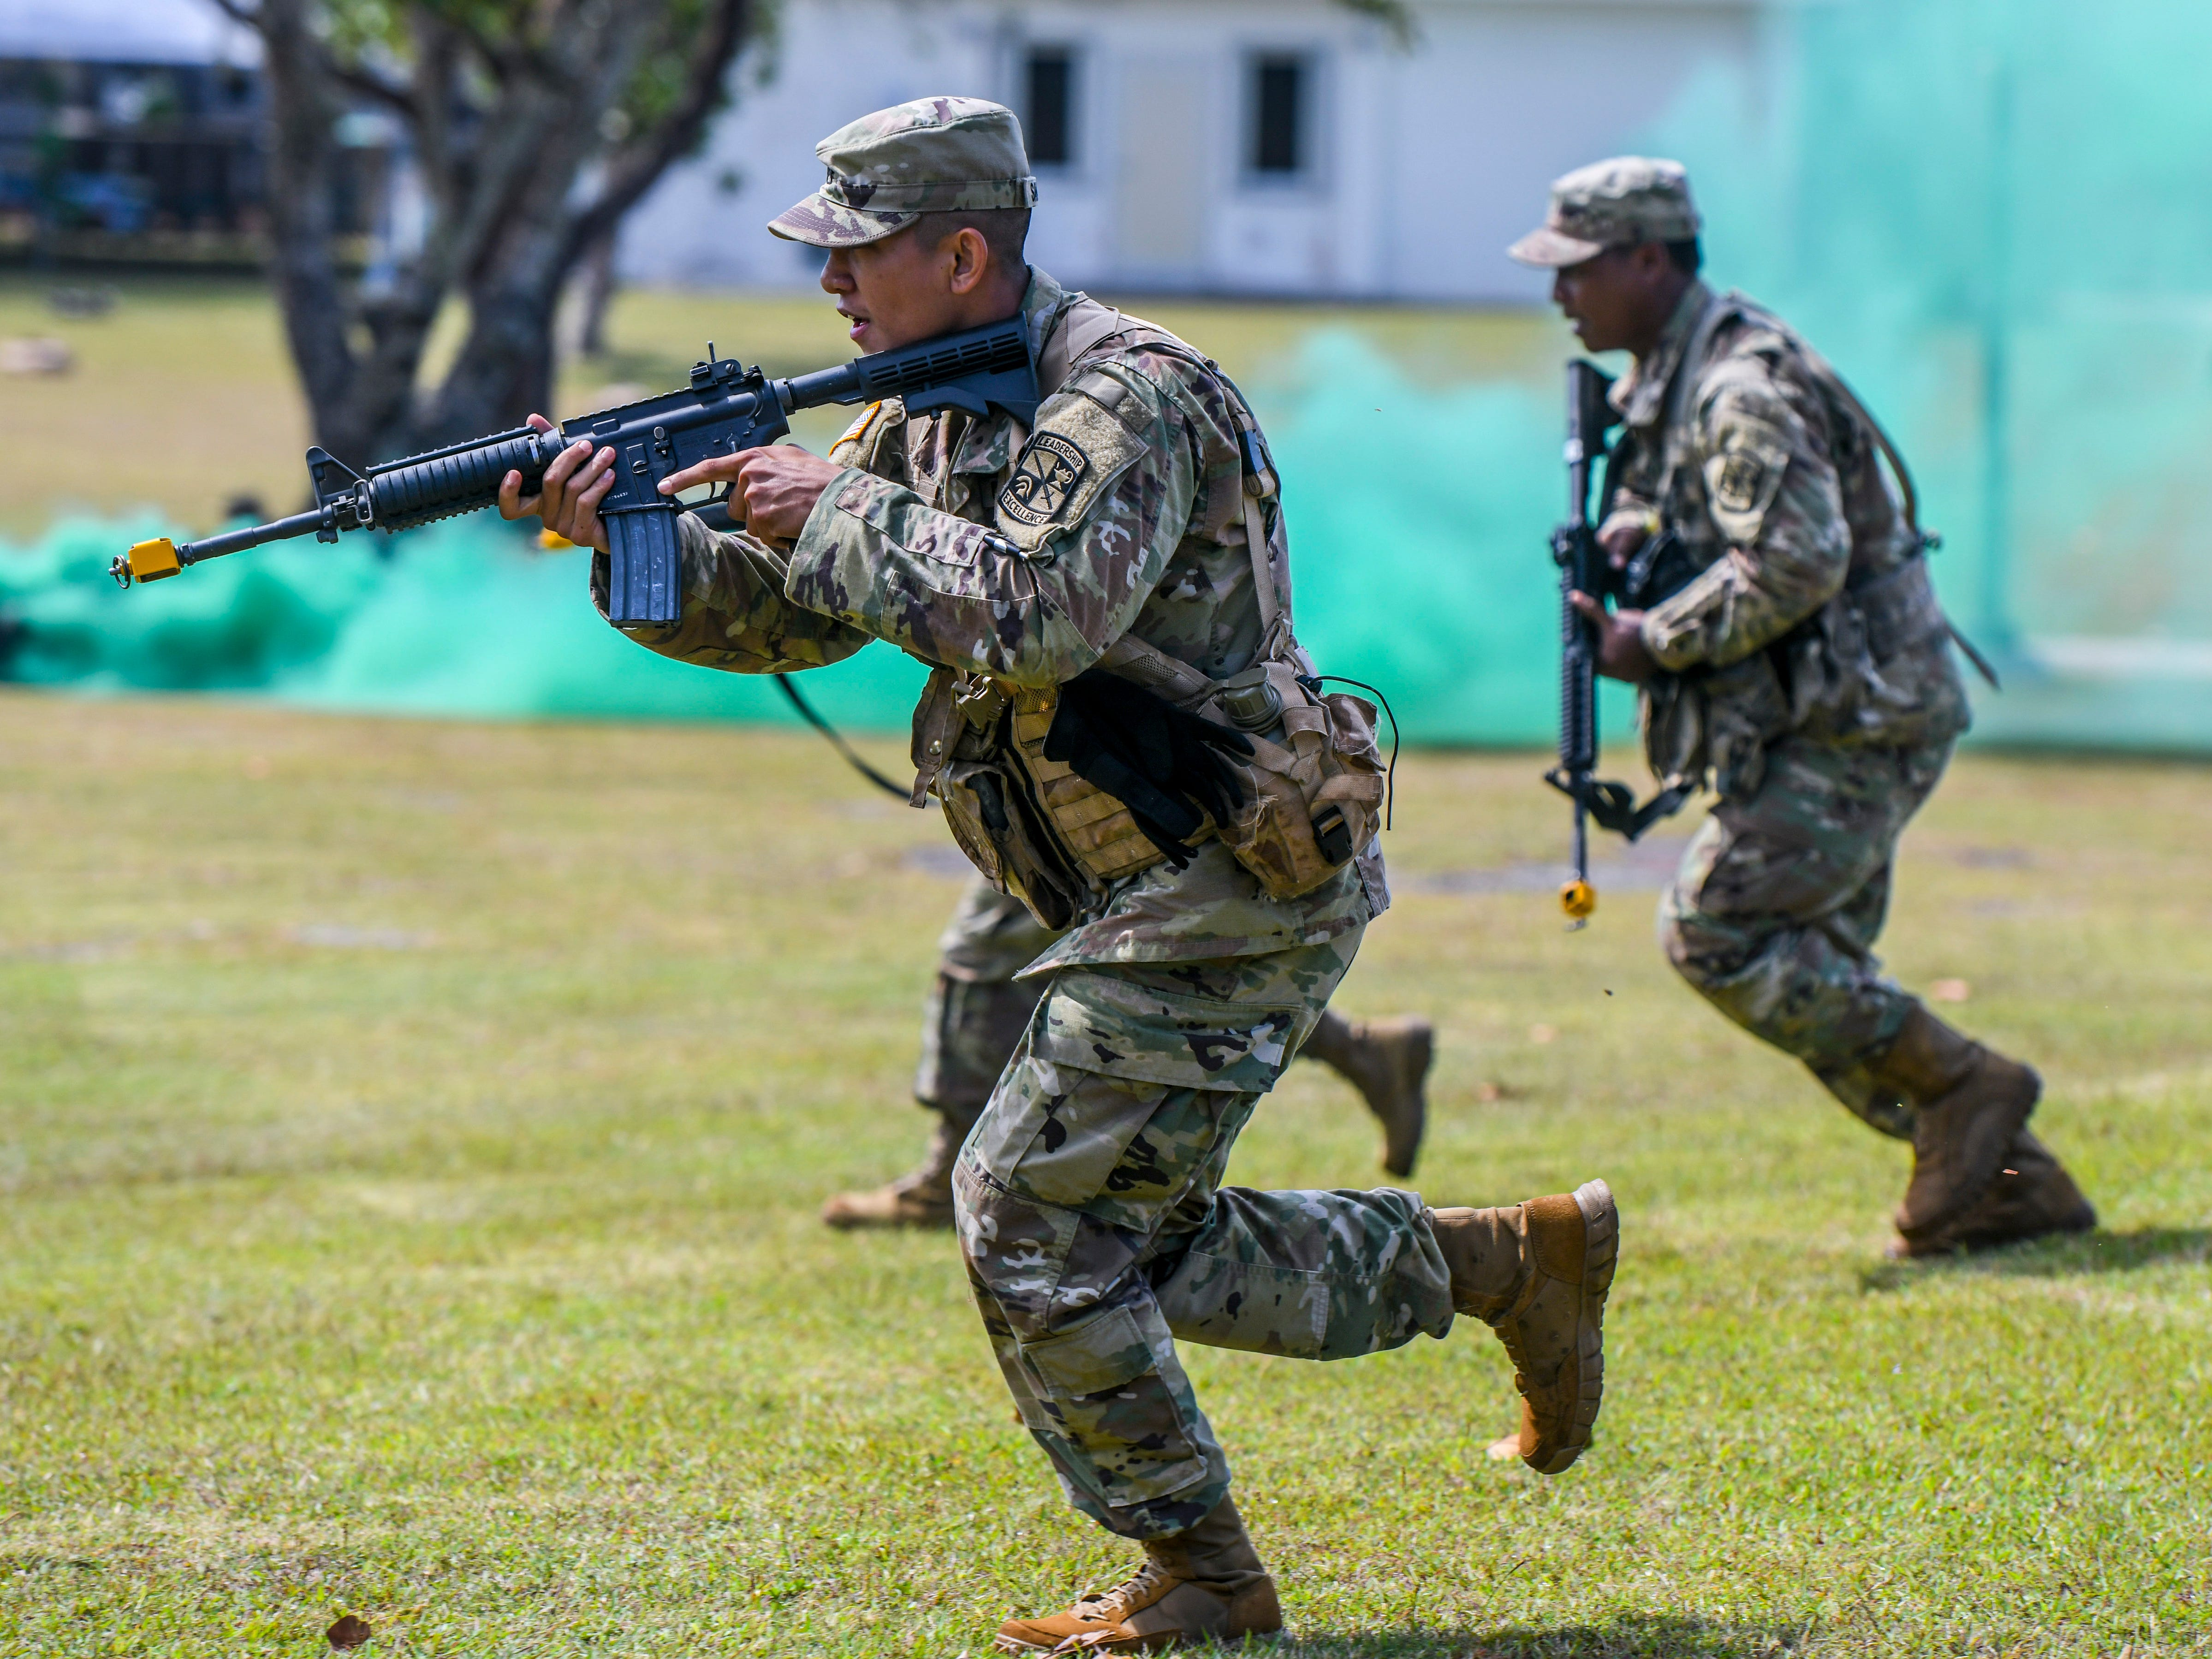 Army ROTC cadets demonstrate their skills during a mock battlefield engagement during the University of Guam 51st Charter Day celebration in Mangilao on Tuesday, March 12, 2019.